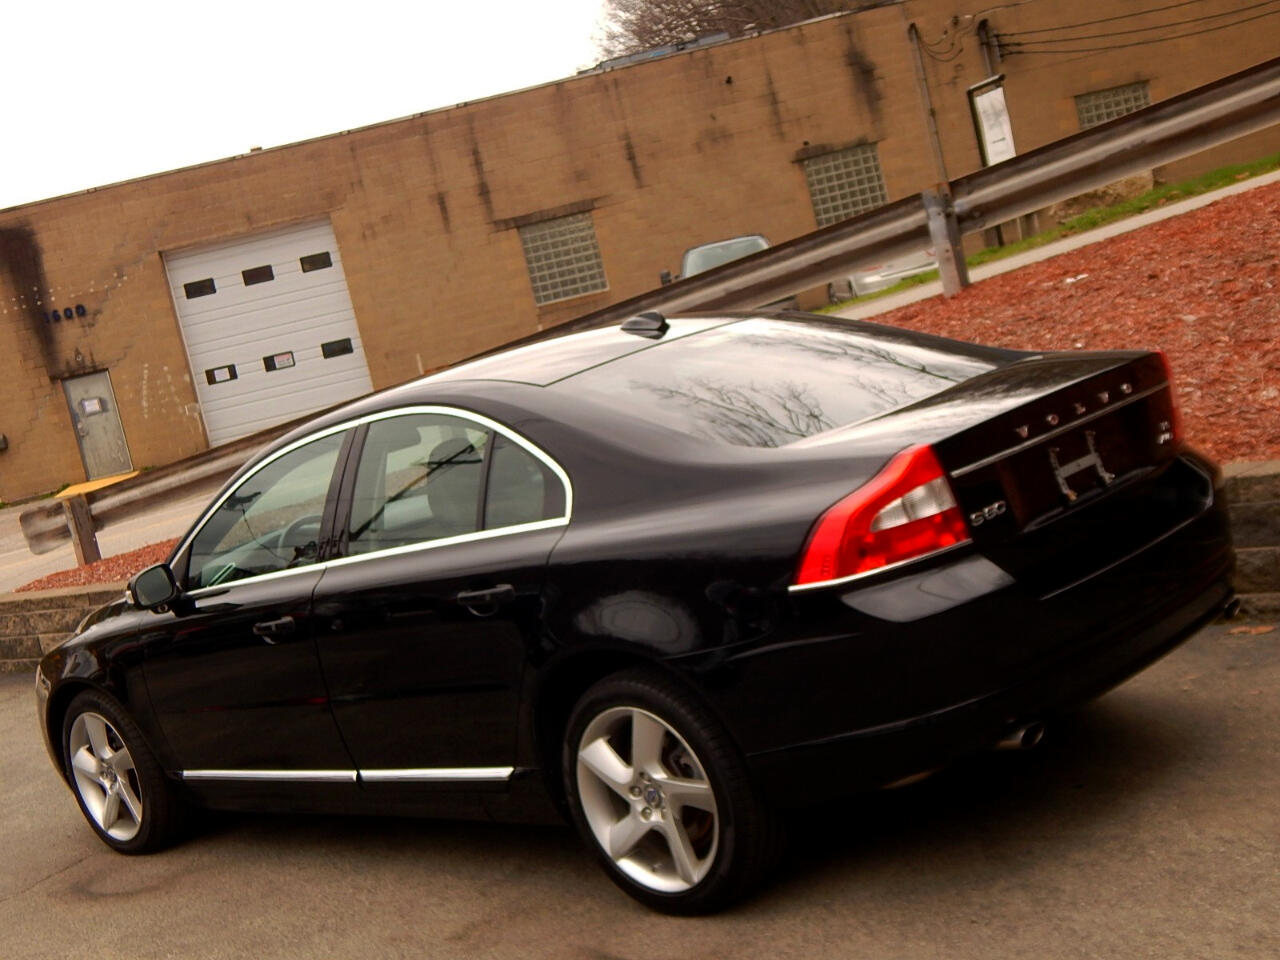 Volvo S80 Price Awesome Used 2010 Volvo S80 In Glenshaw Pa Auto